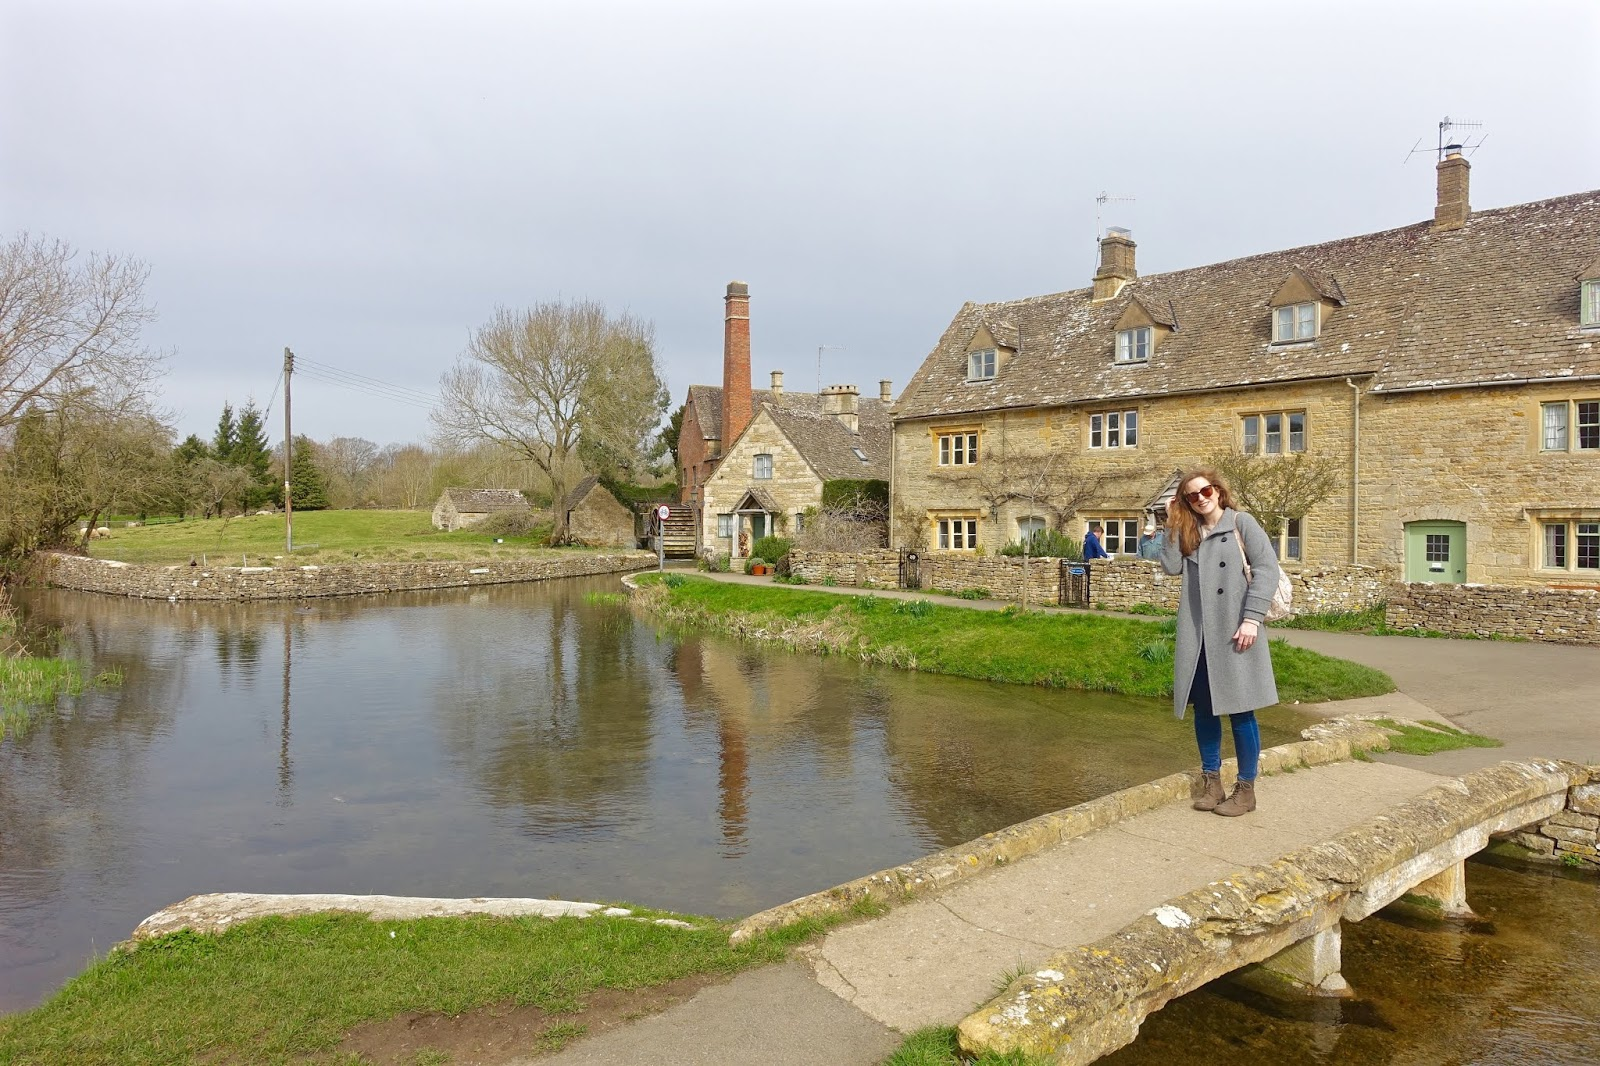 Lower Slaughter honey and limestone cottages